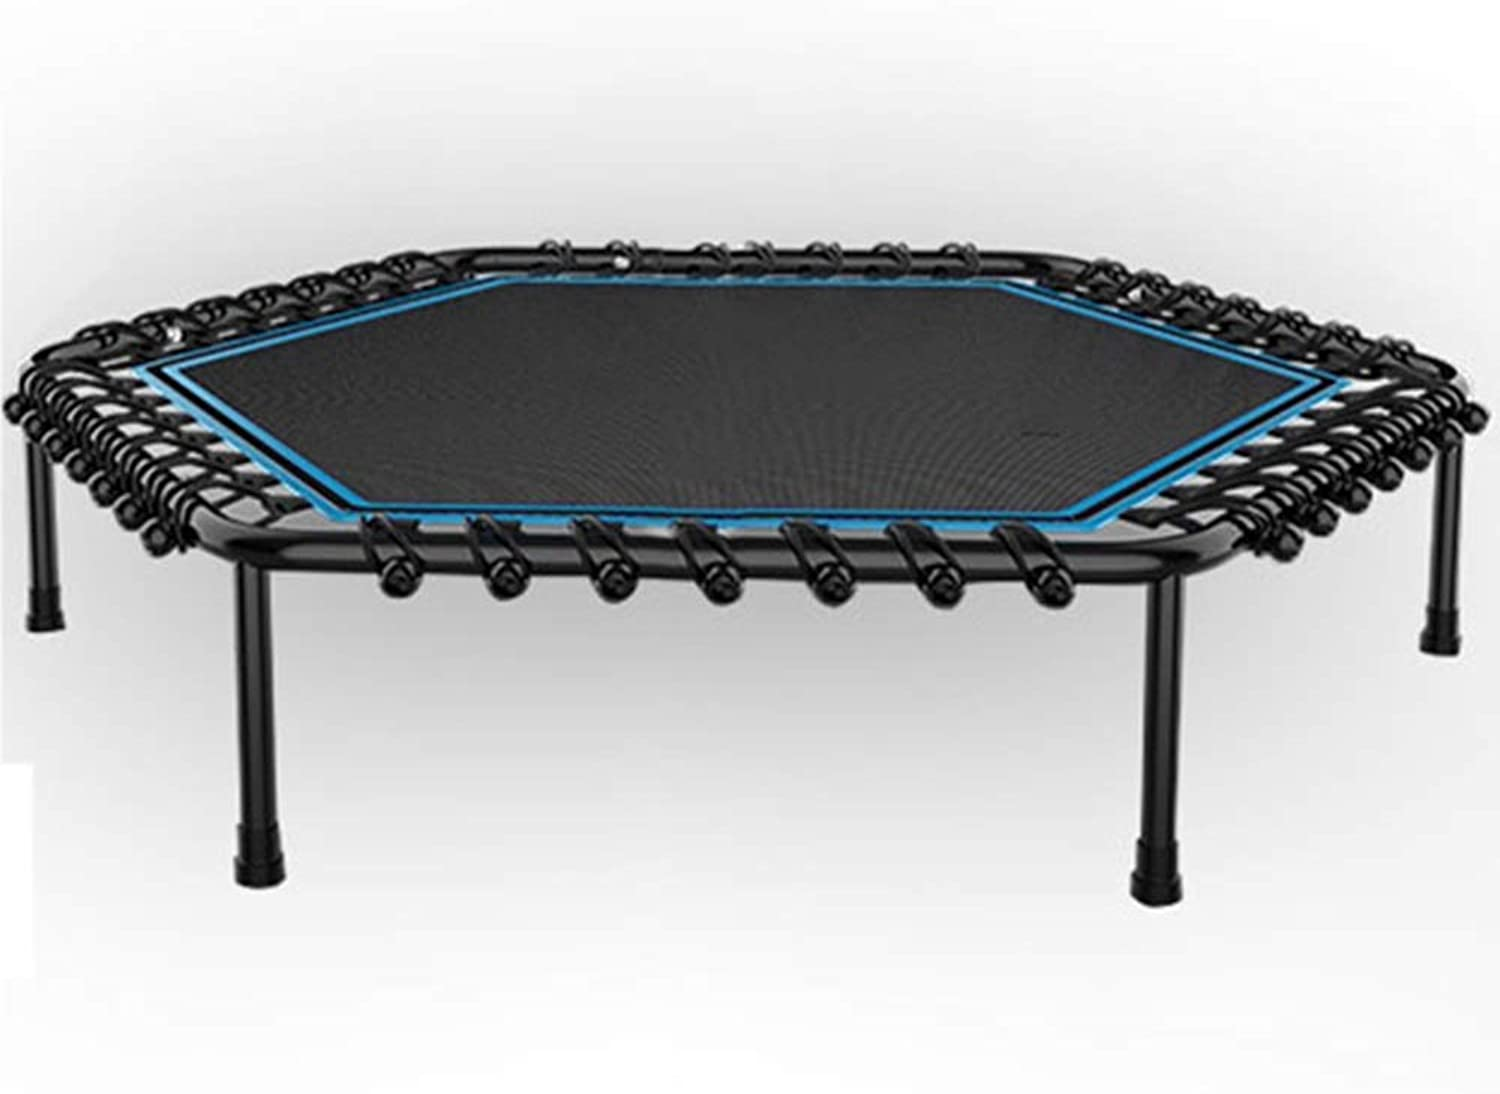 HANSHAN Trampoline, Trampoline,Life Bounce Mini Trampoline Fitness Body Exercise for Adults Kids bluee Black 2 Size